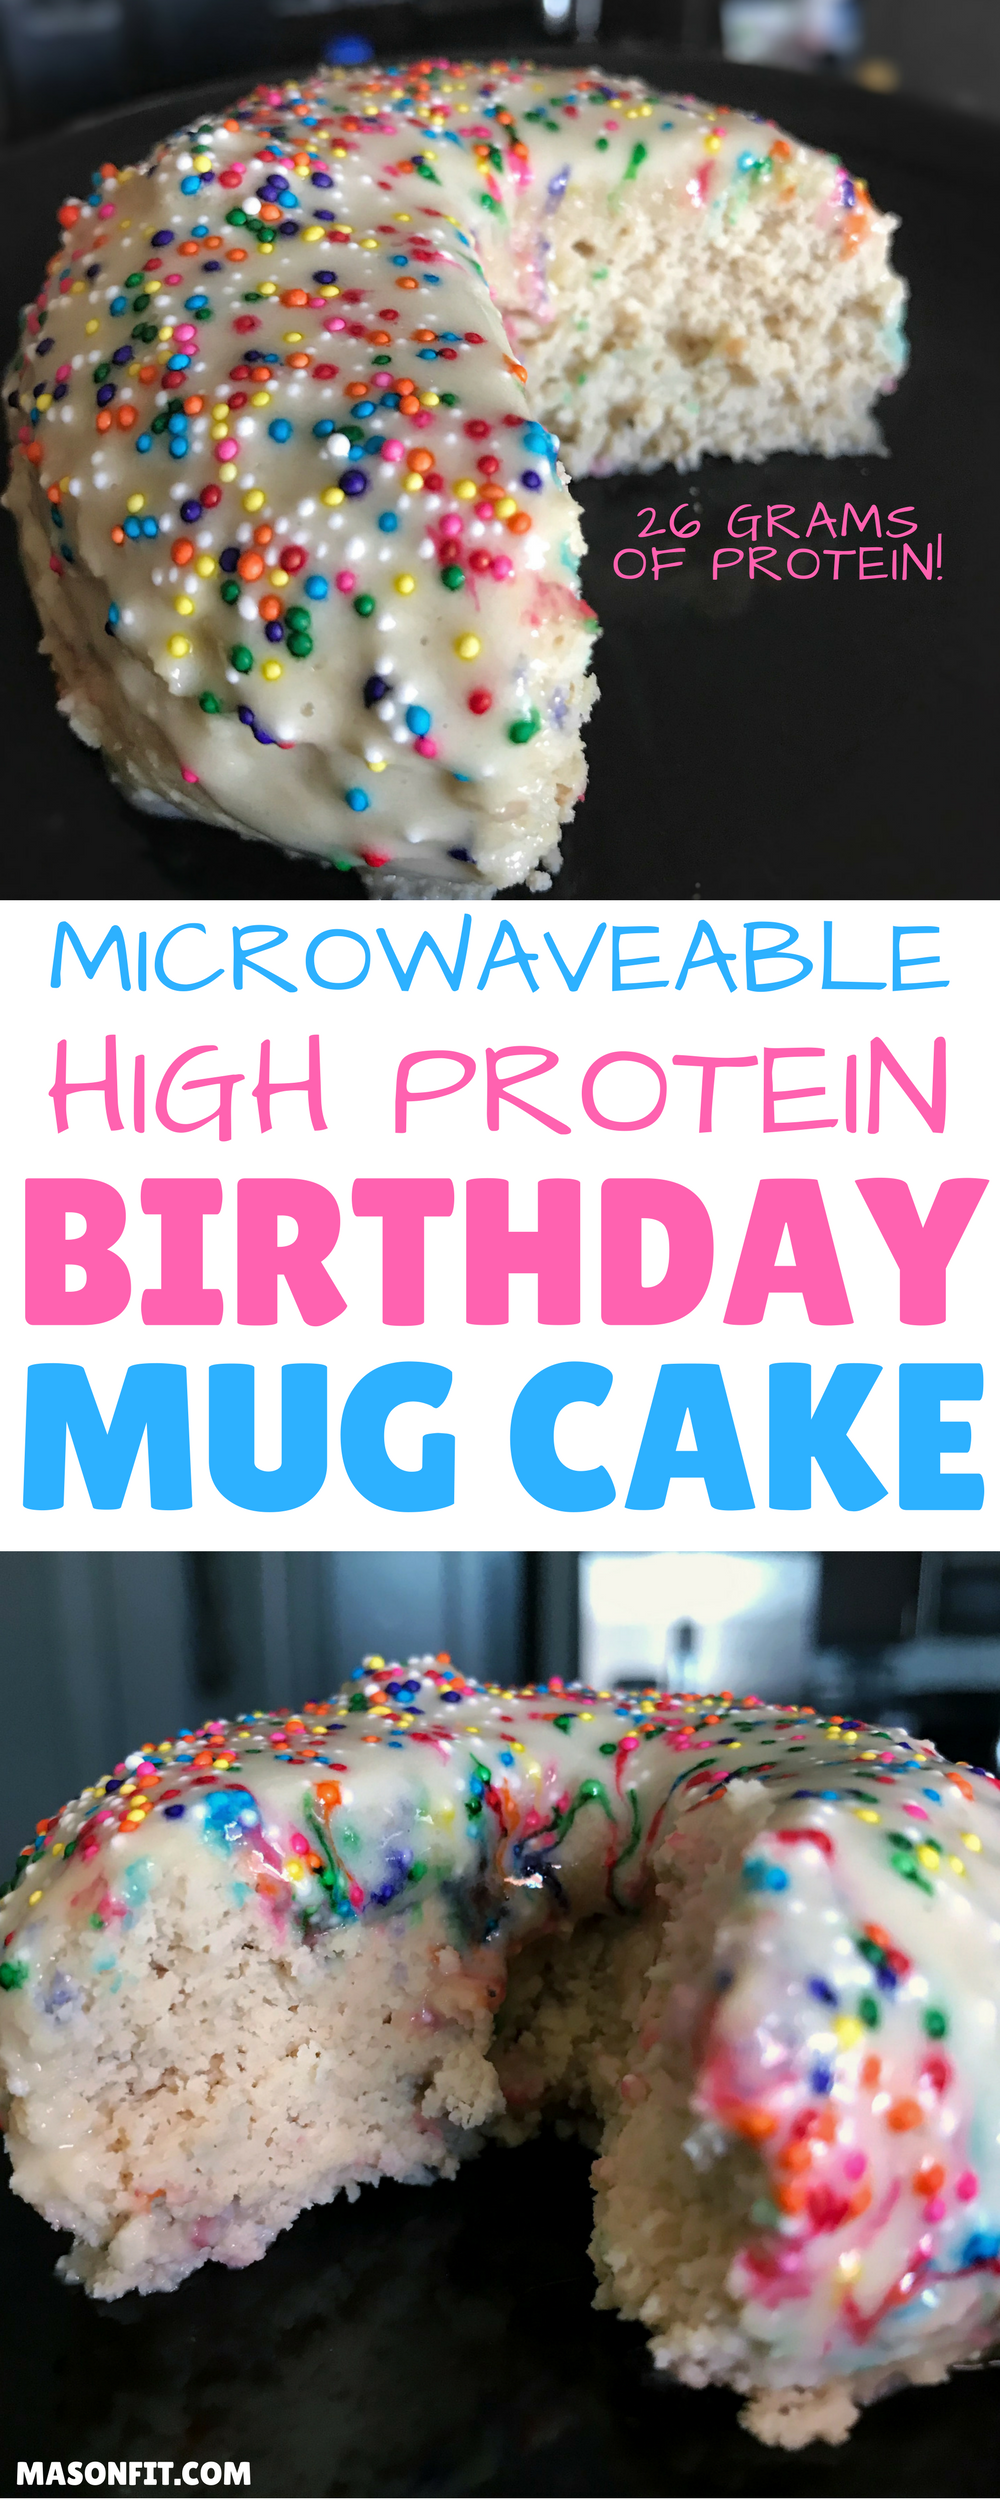 Pleasant A Mug Cake Recipe For High Protein Birthday Cake Thats Ready In Birthday Cards Printable Opercafe Filternl